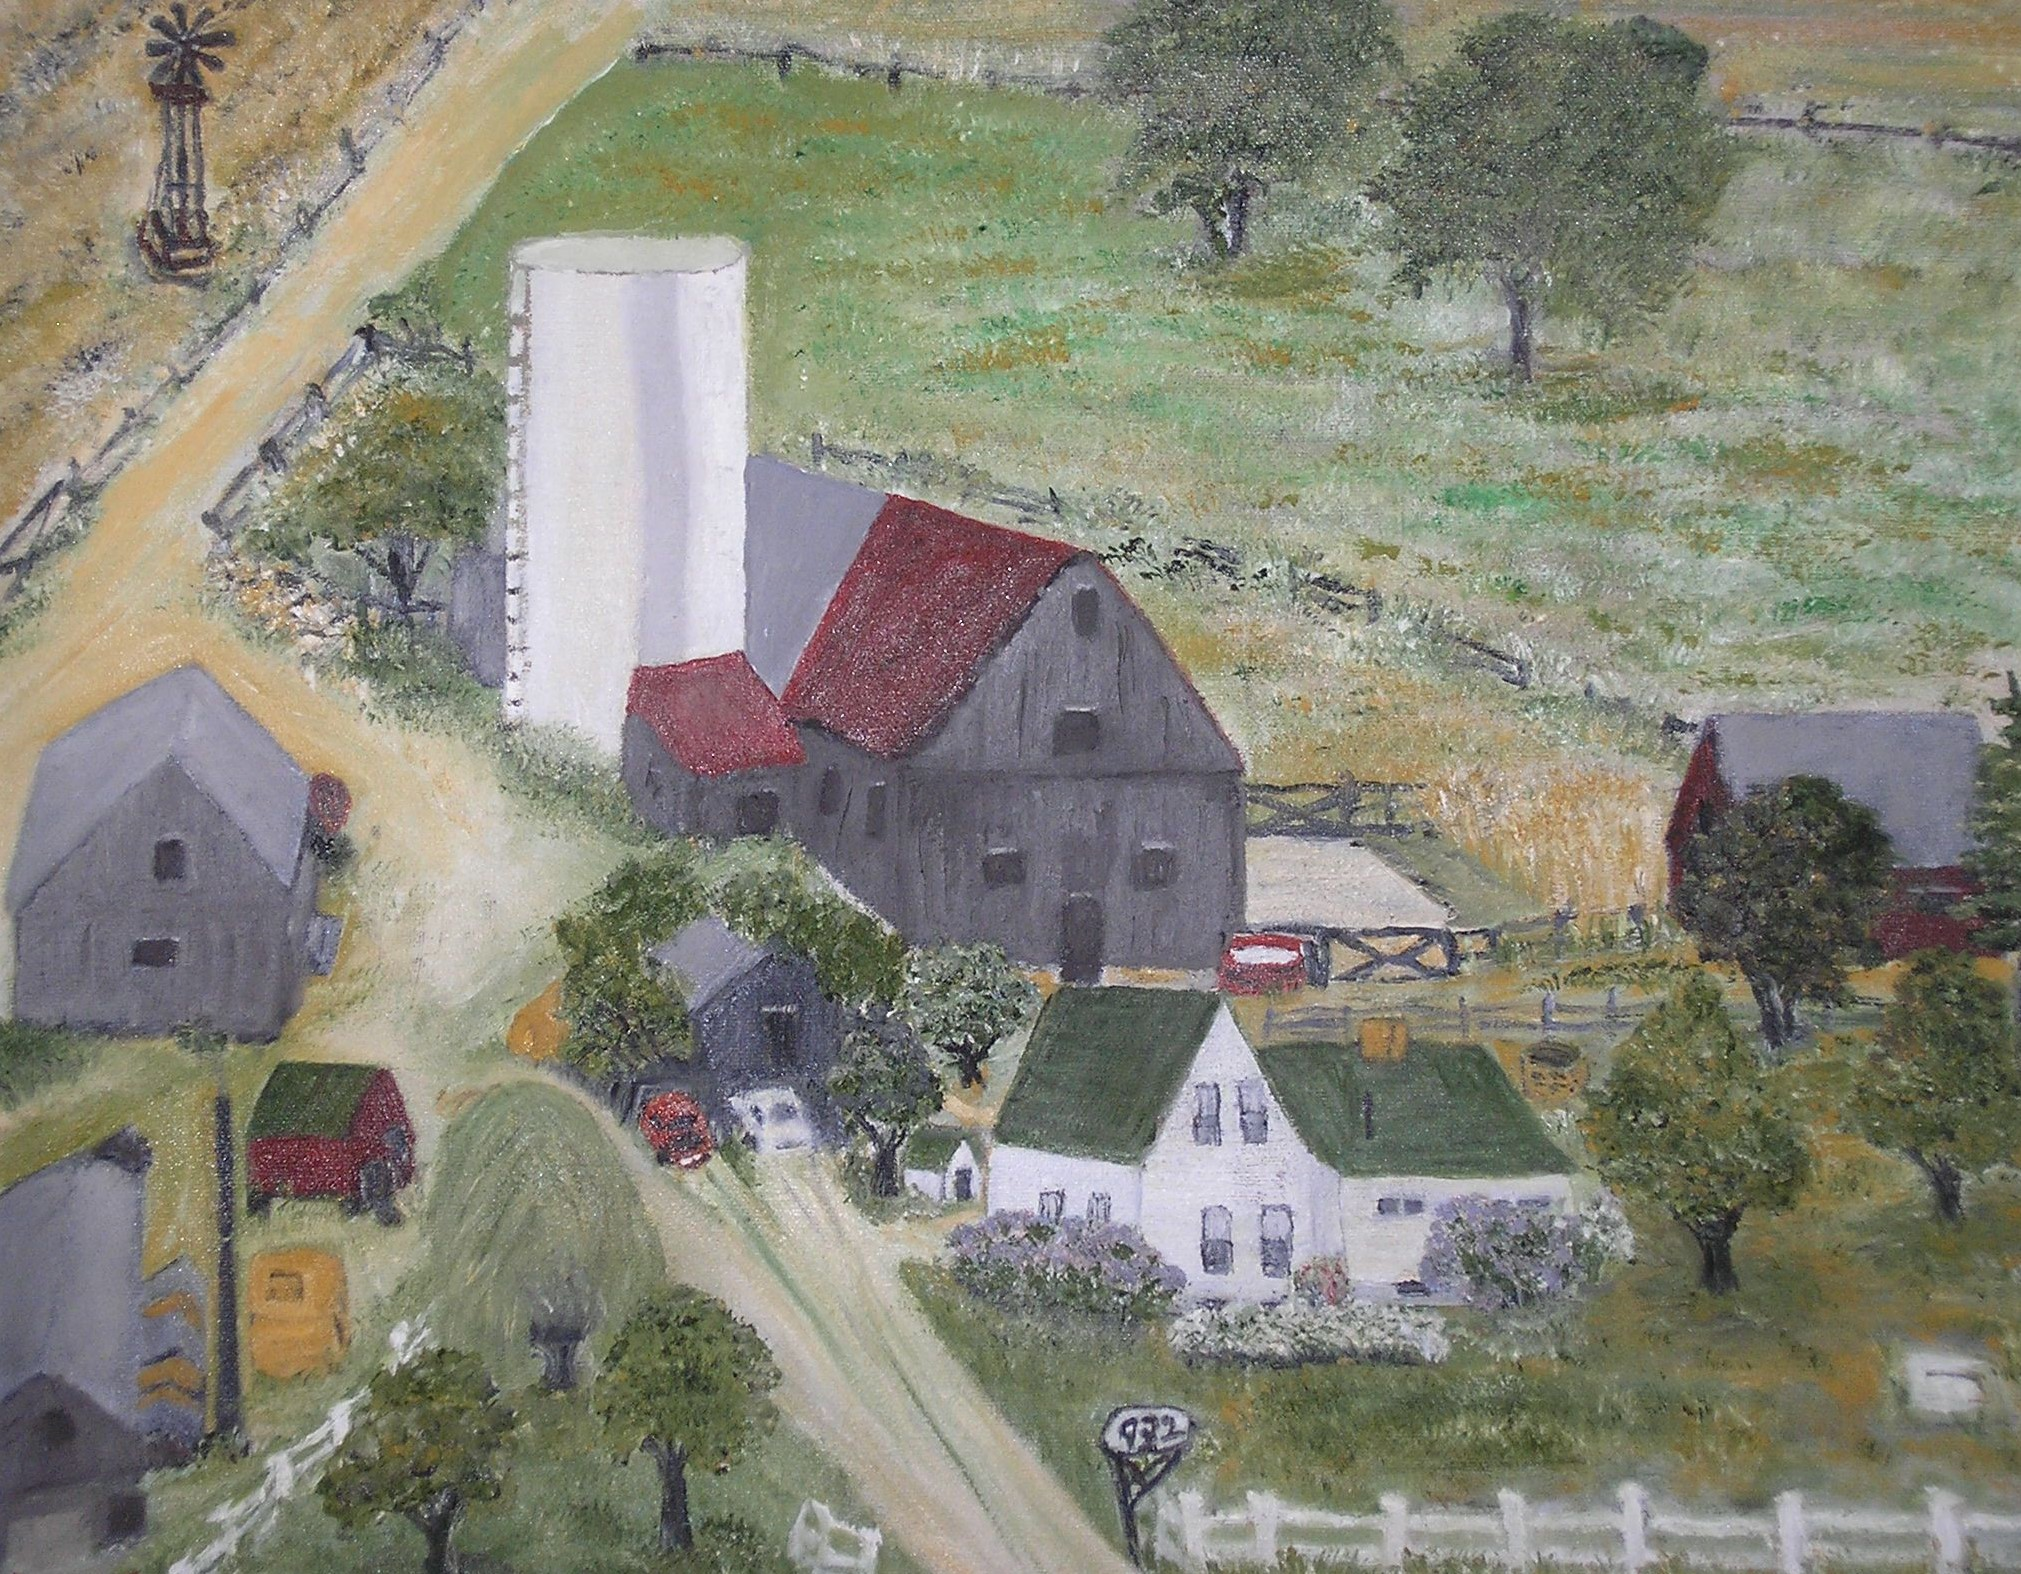 The Homeplace - AMc - 2005